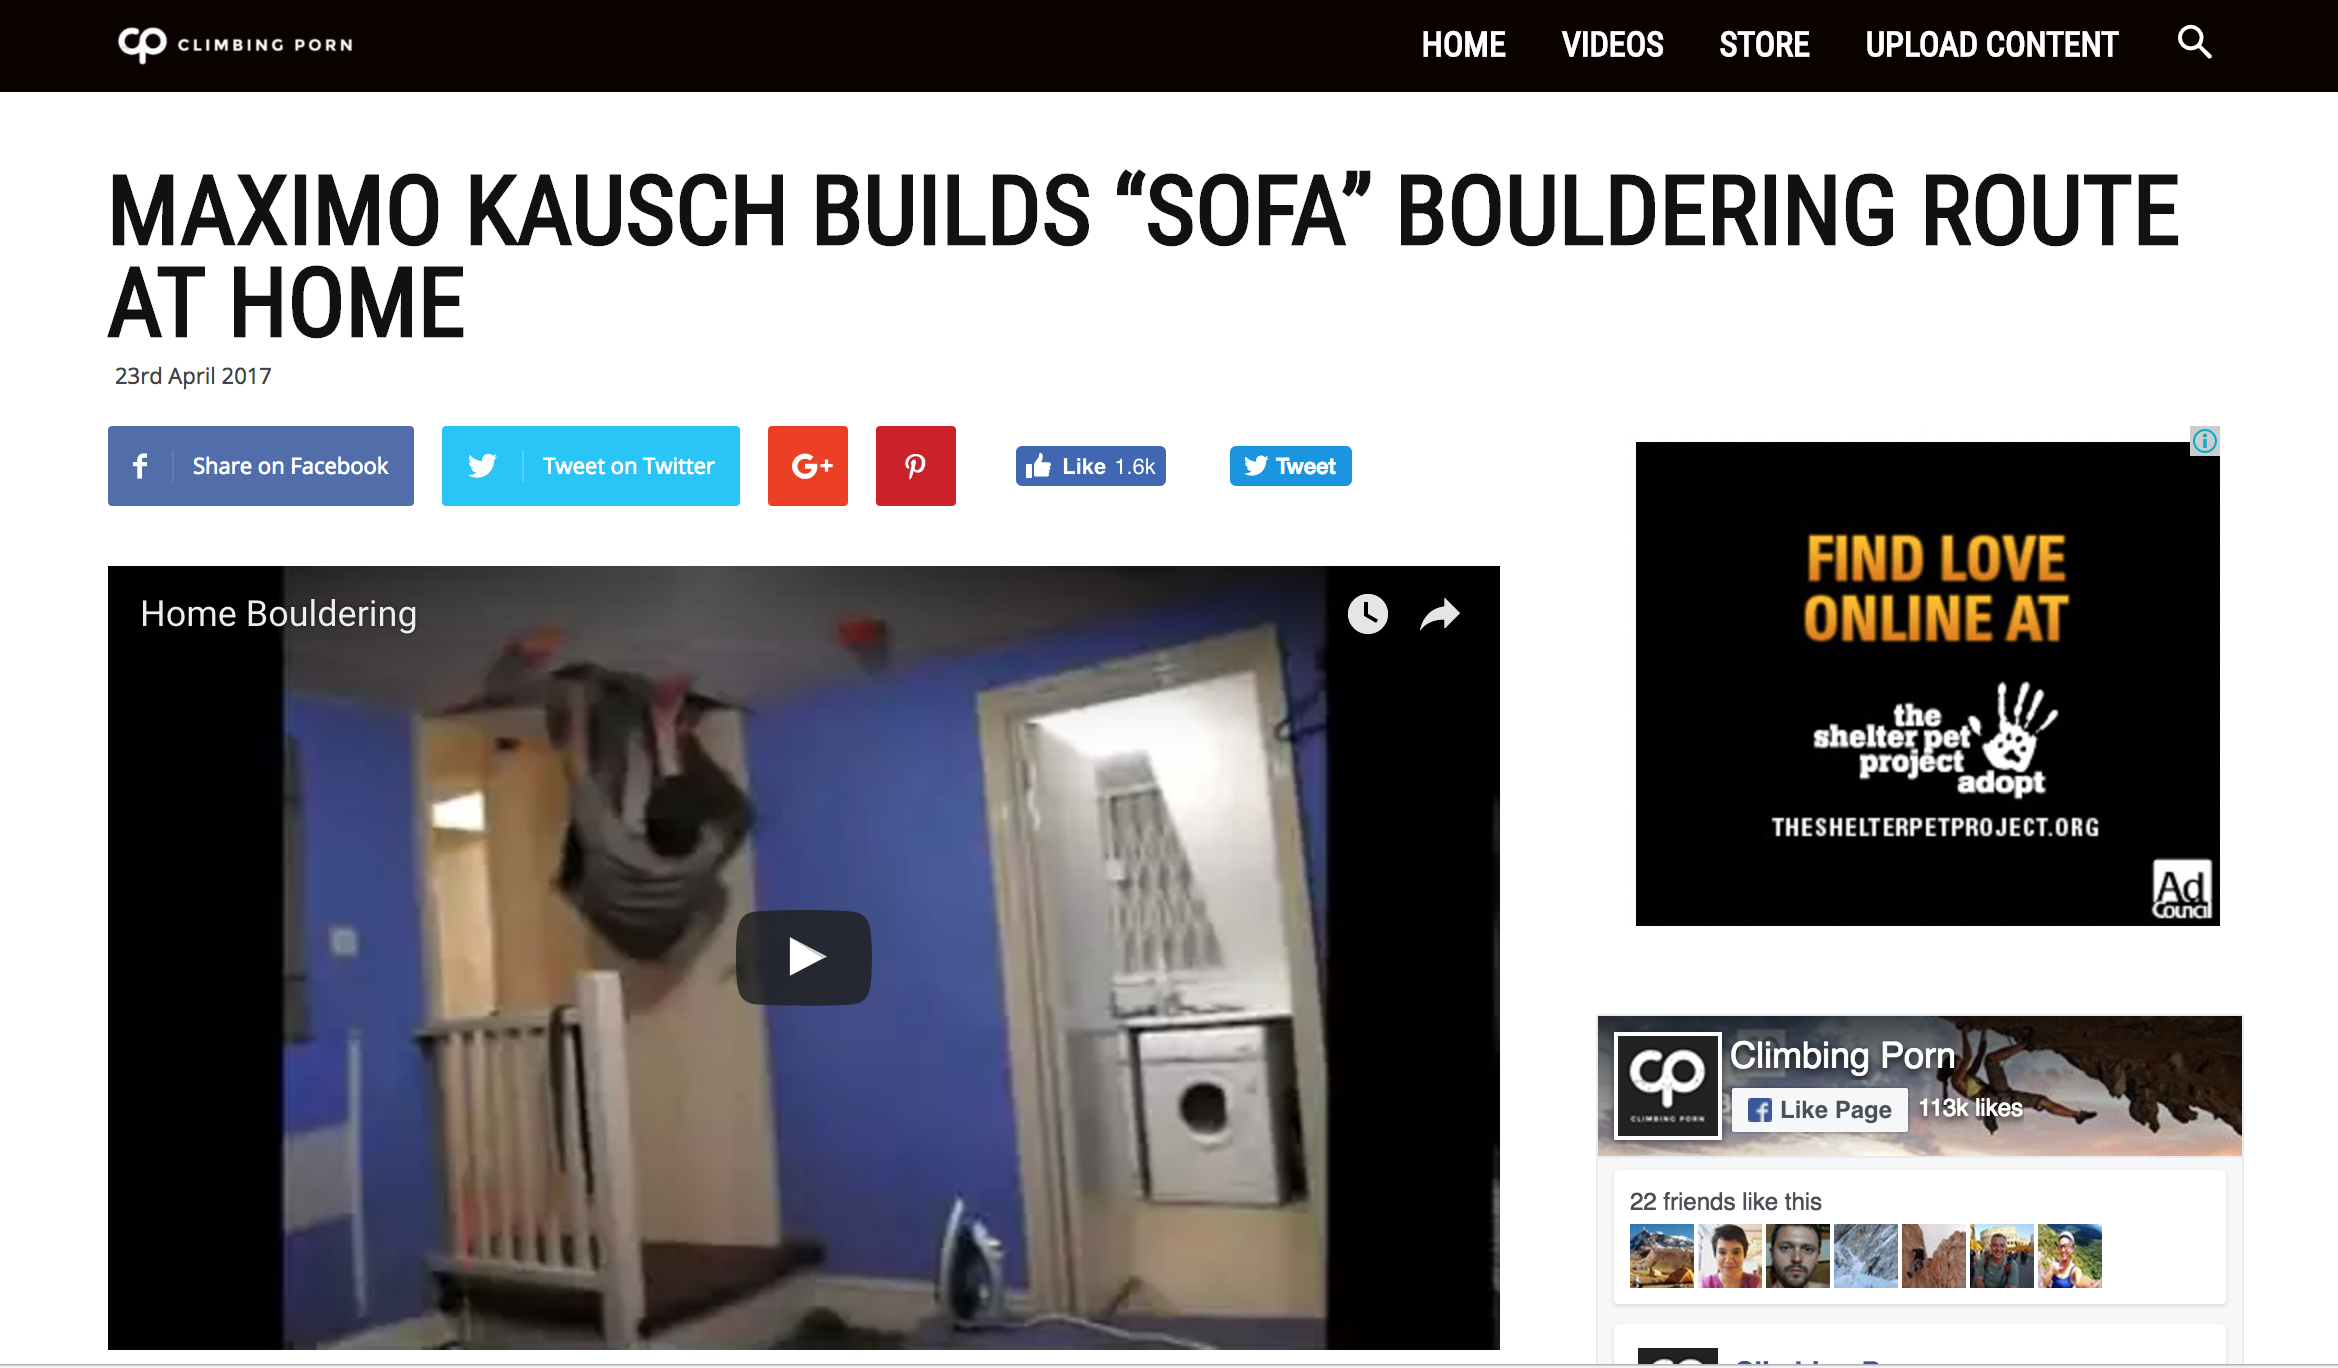 maximo-kausch-builds-sofa-bouldering-route-at-home